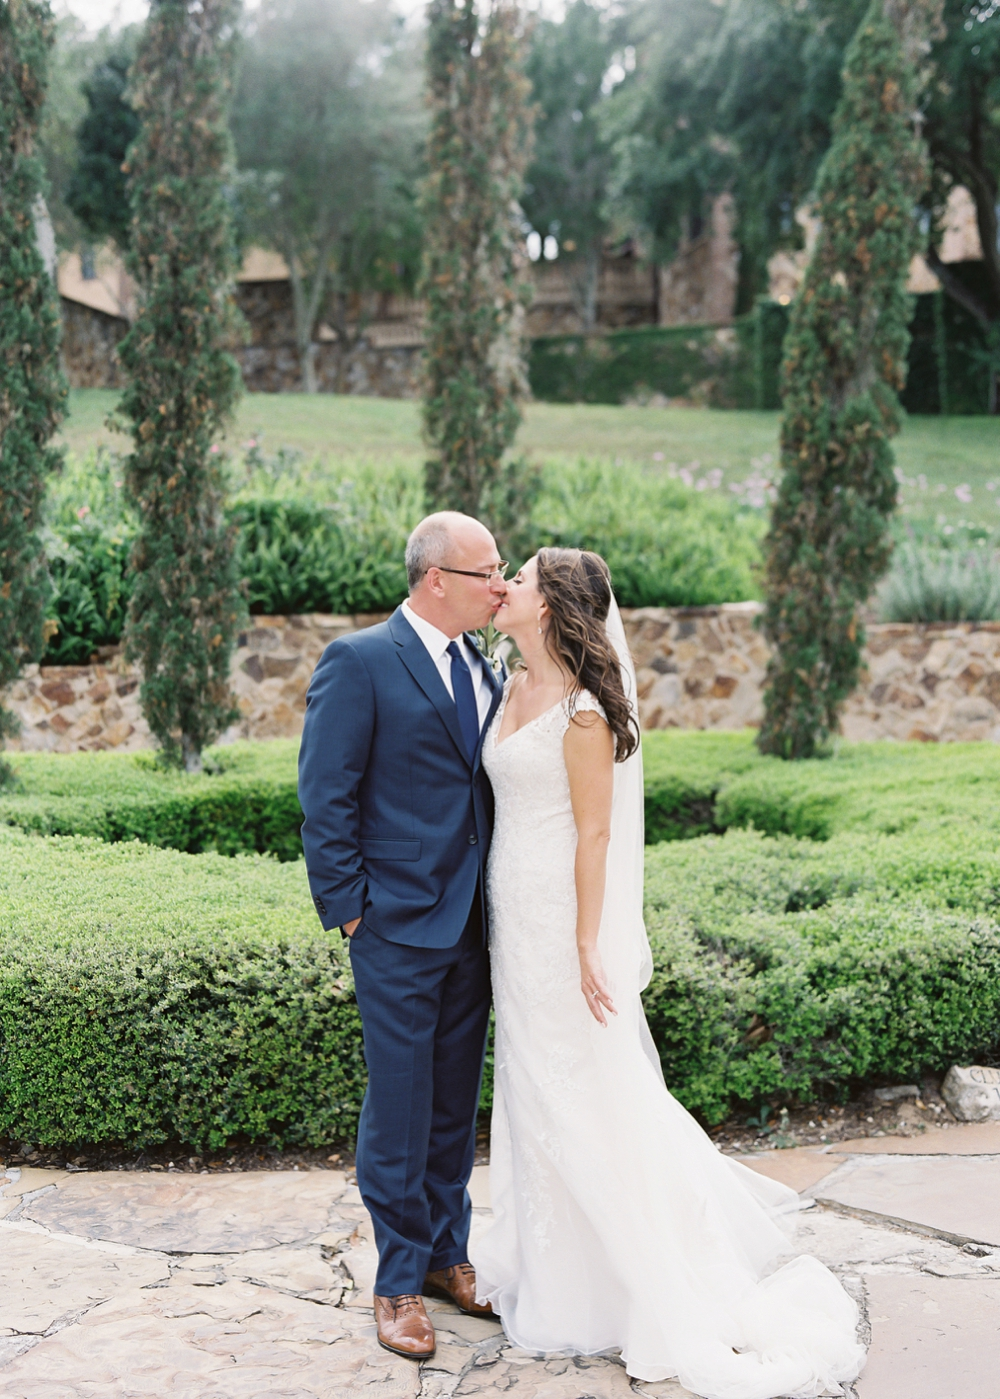 Vicki Grafton Photography - Fine Art Film Wedding Photographer - Bella Collina Wedding_0038.jpg